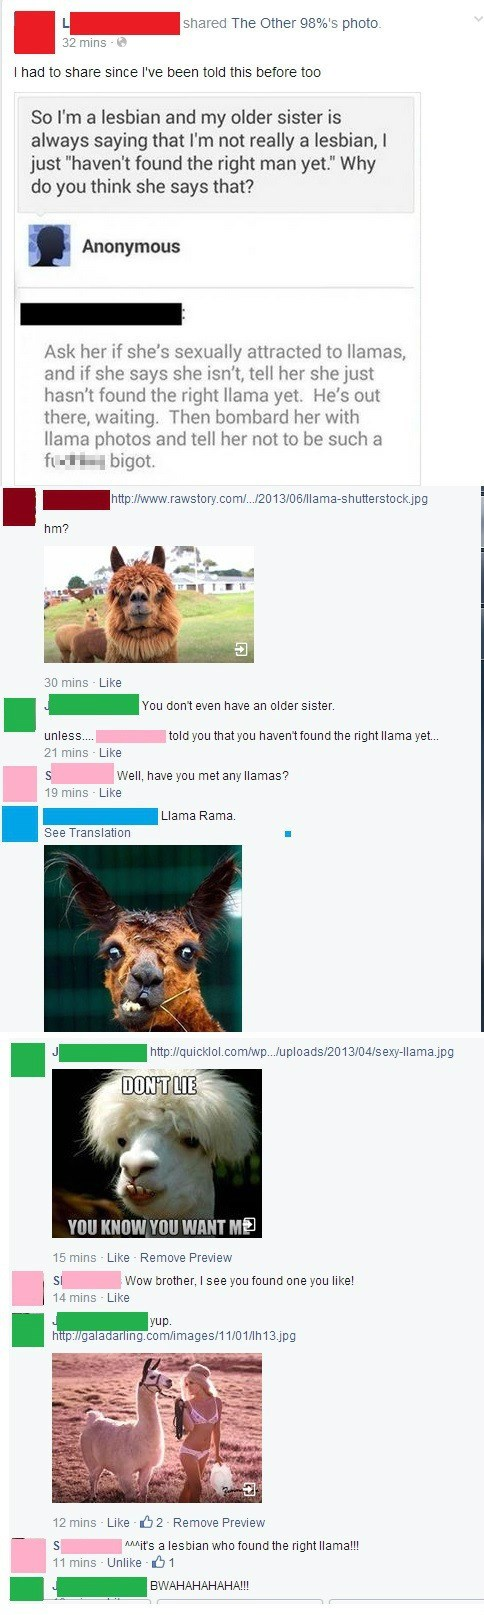 llama lgbtq comments failbook - 8241174016